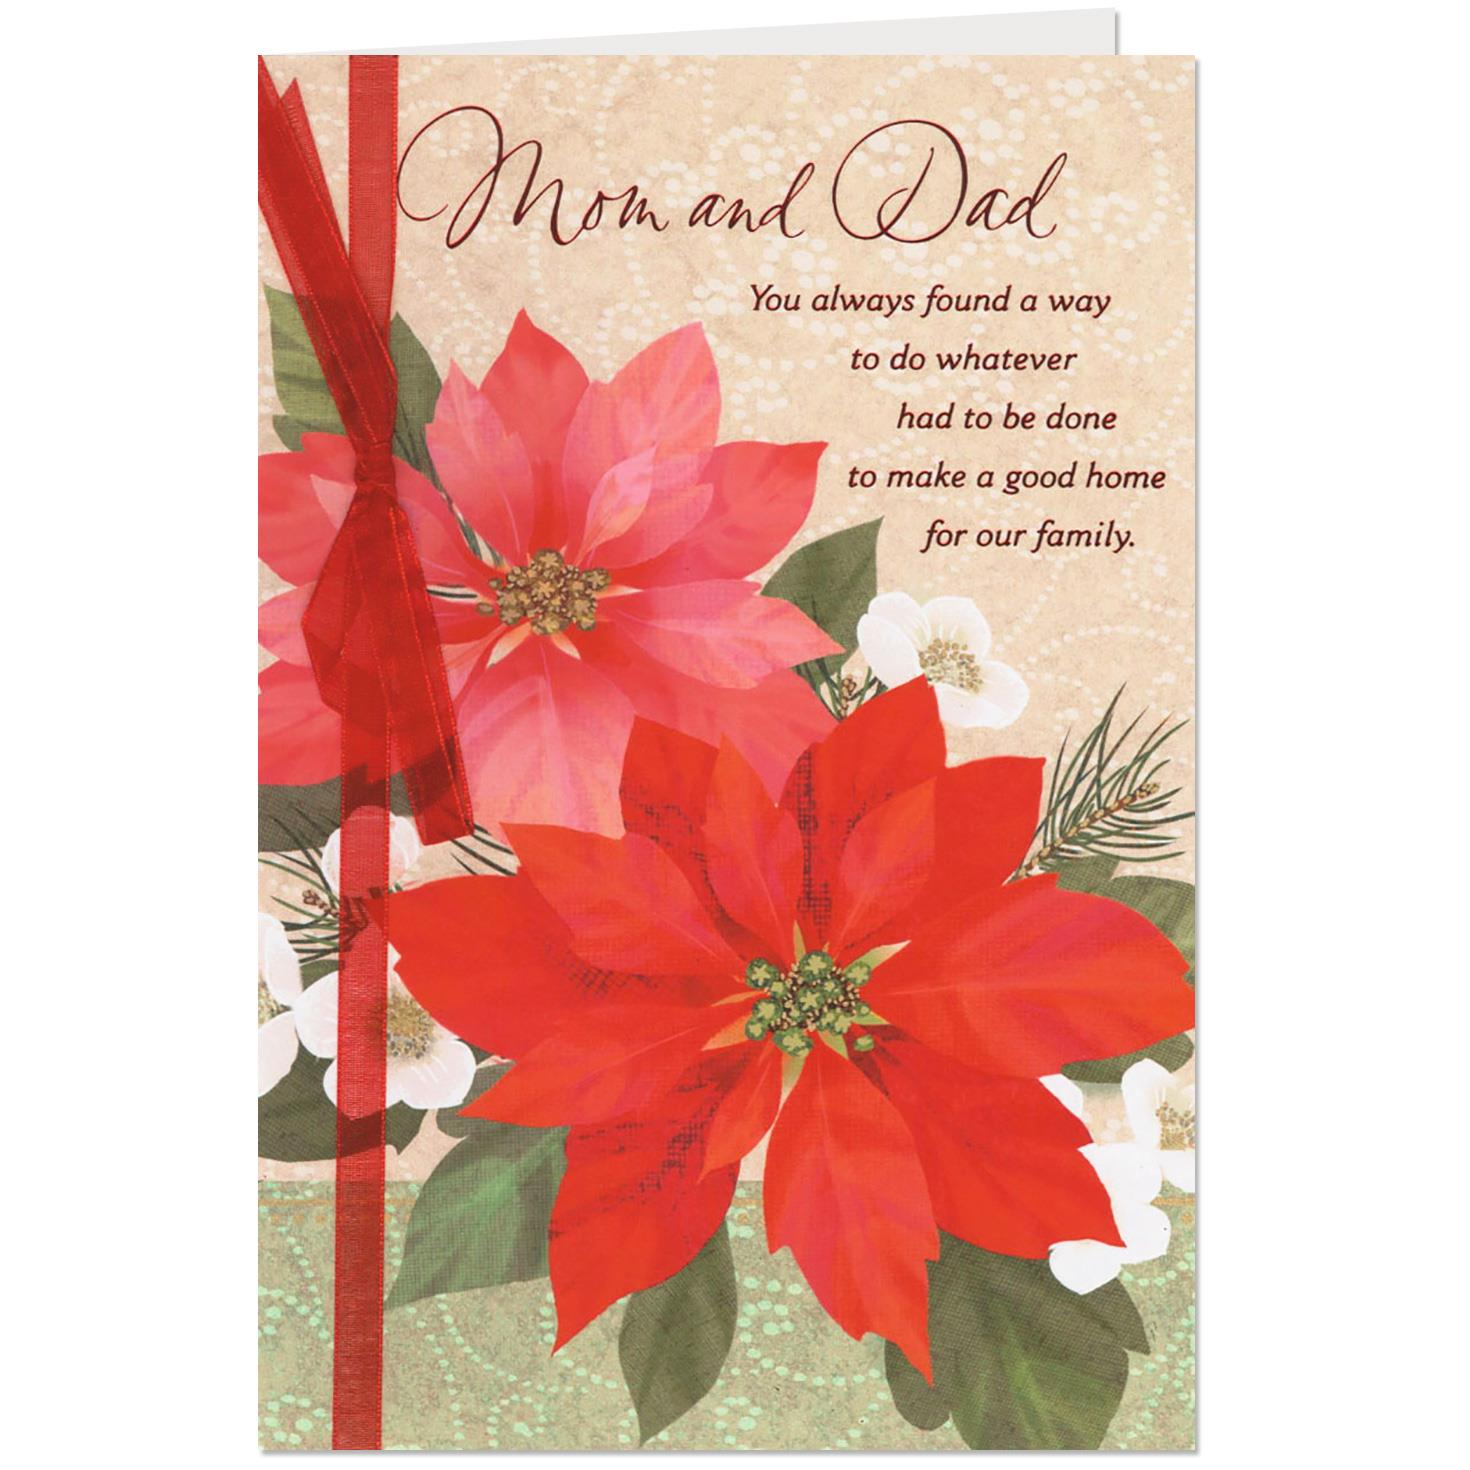 Family and love are the best gifts christmas card for mom and dad family and love are the best gifts christmas card for mom and dad m4hsunfo